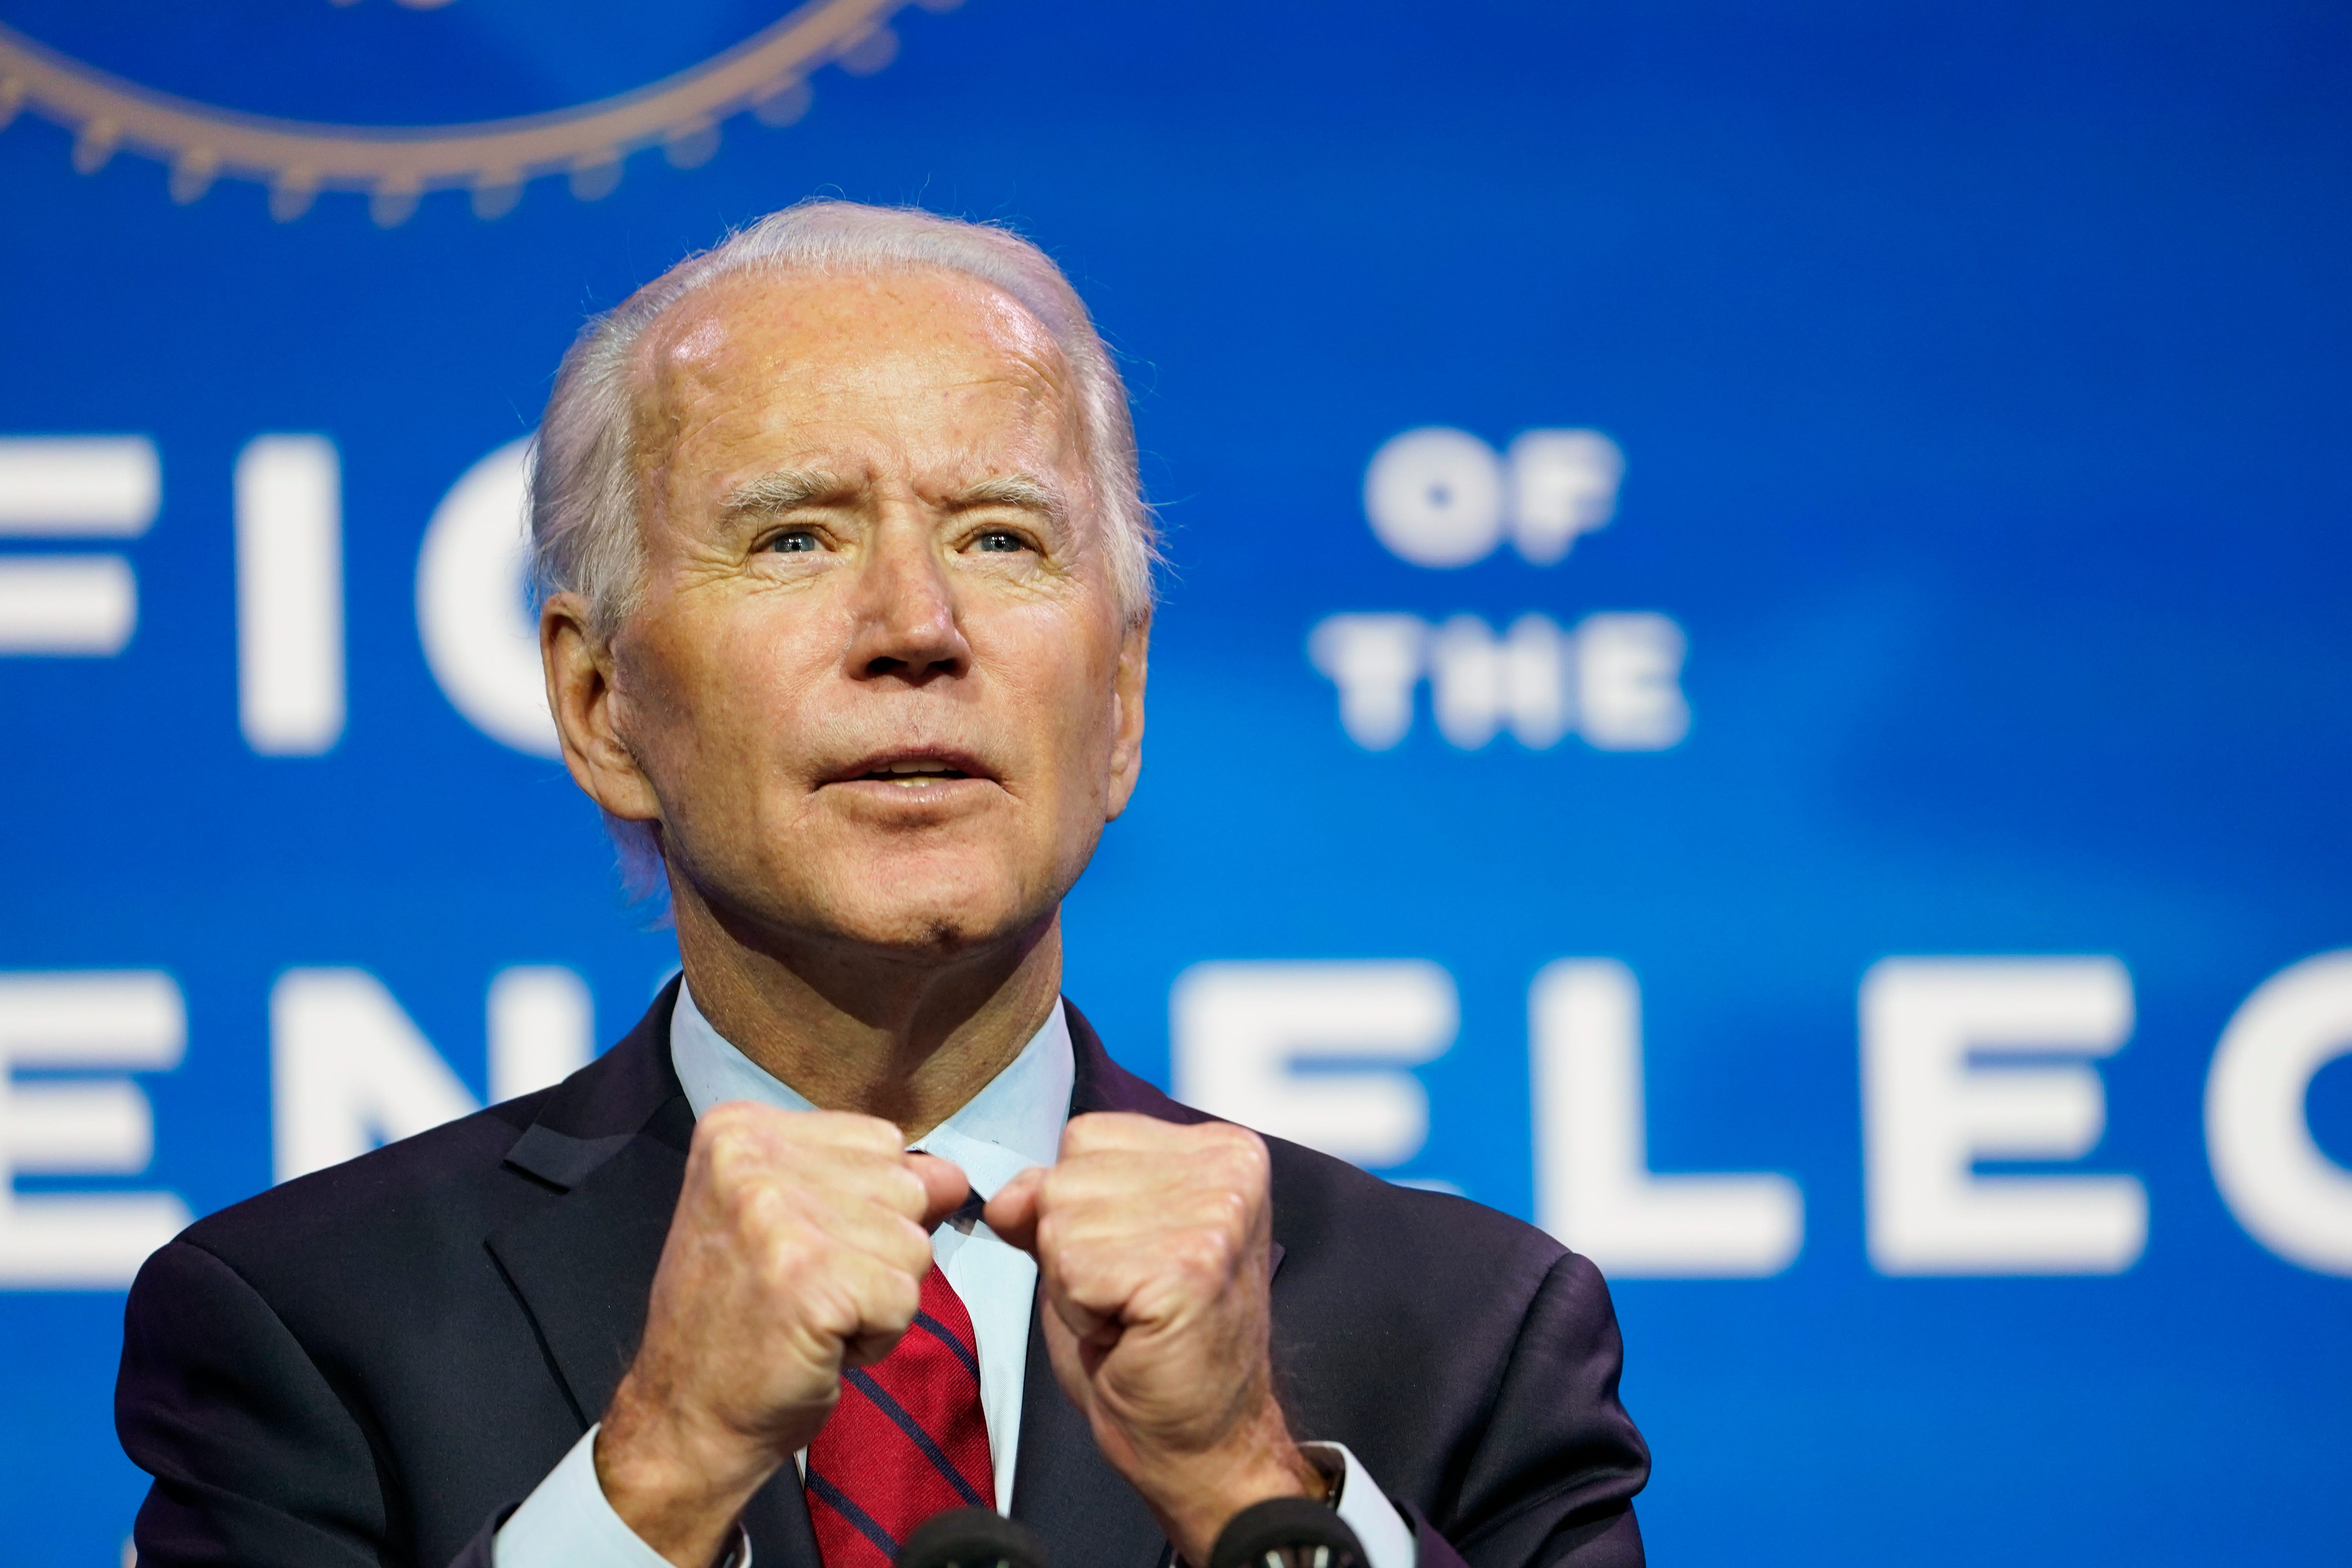 Joe Biden to get 'presidential escort' to White House, virtual parade instead of traditional inaugural festivities